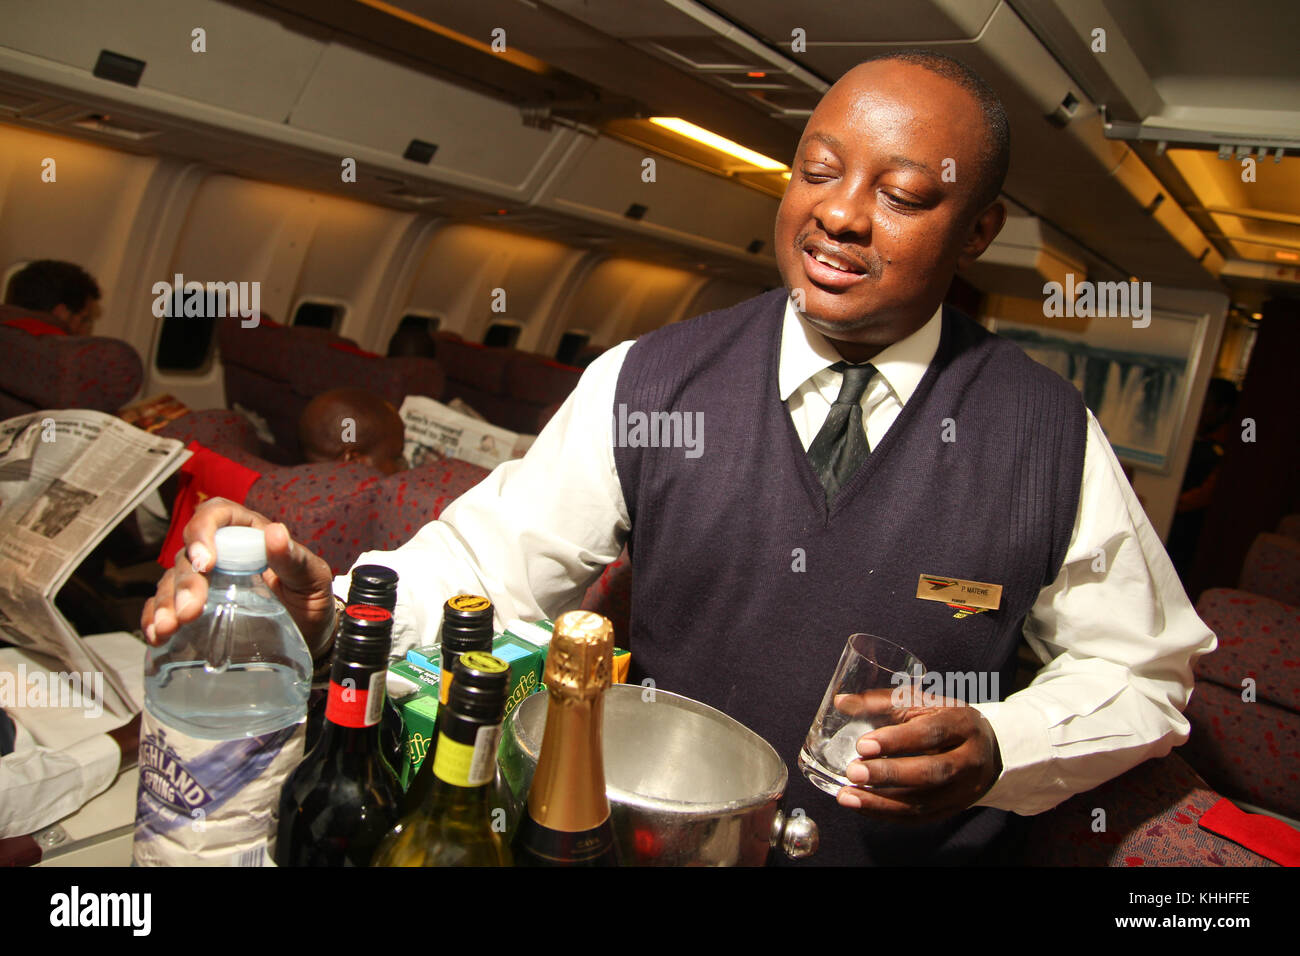 GAtwick, UK - 10 October 2011: A flight attendant ready to serve drinks on the London to Harare flight. Credit: - Stock Image